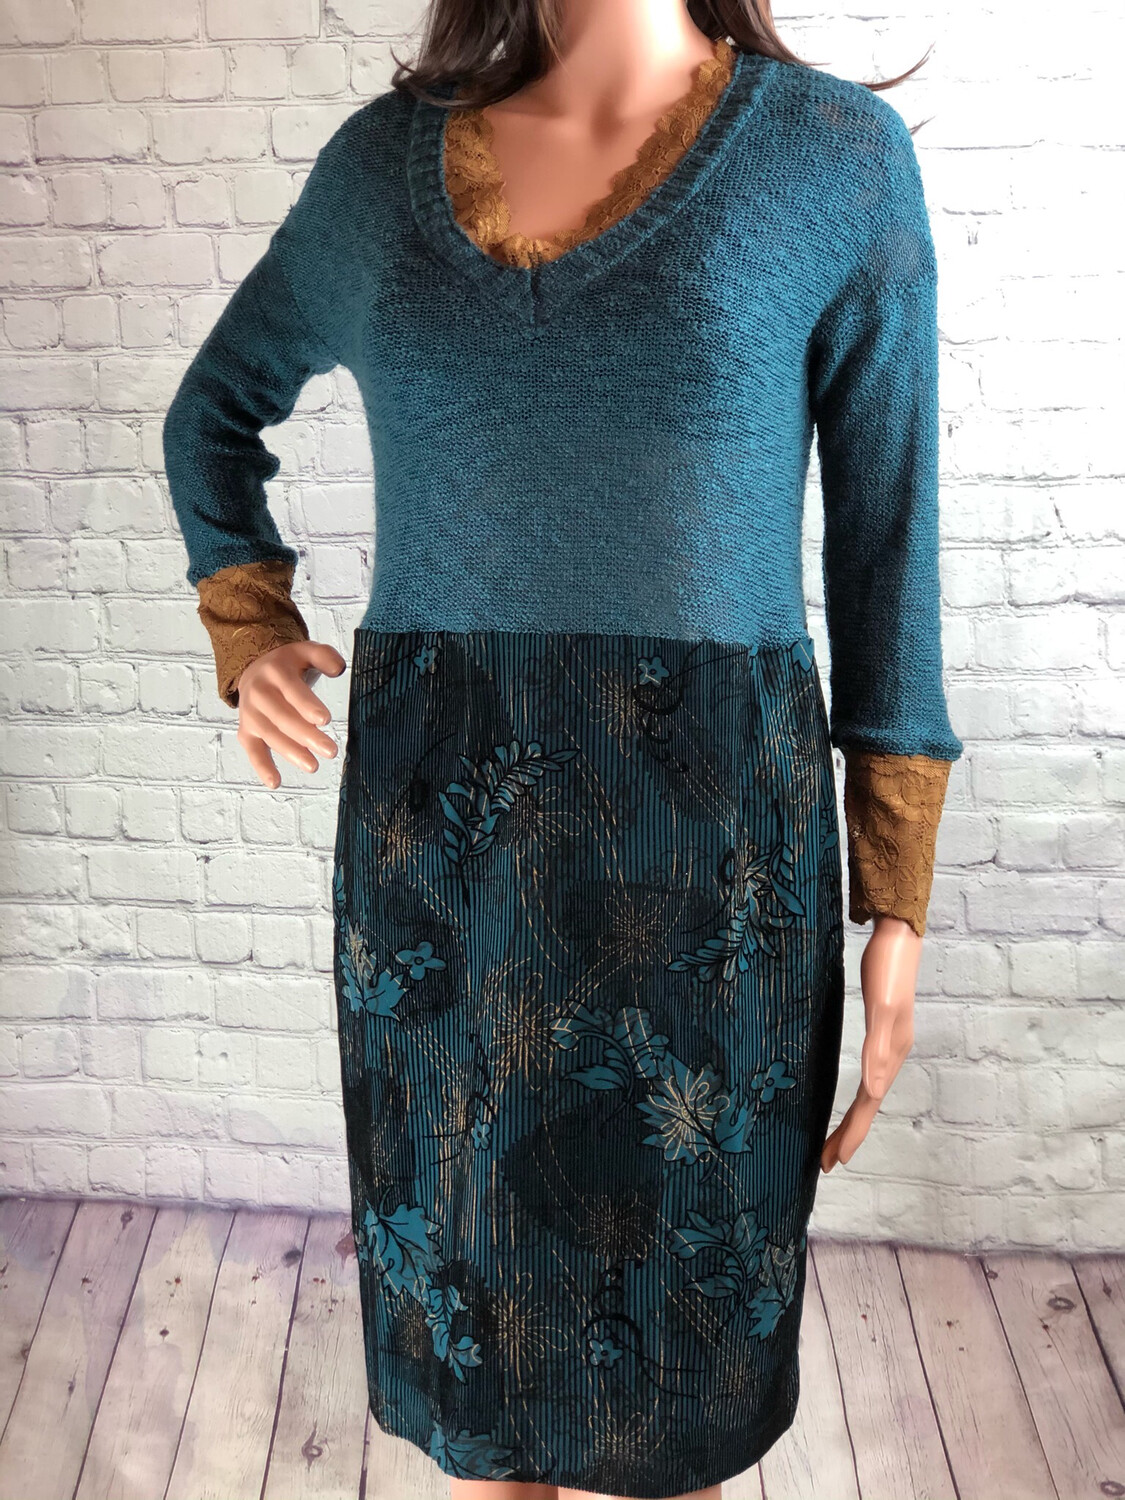 S Threads Upcycled Sweater Dress Velvet And Lace Size XL